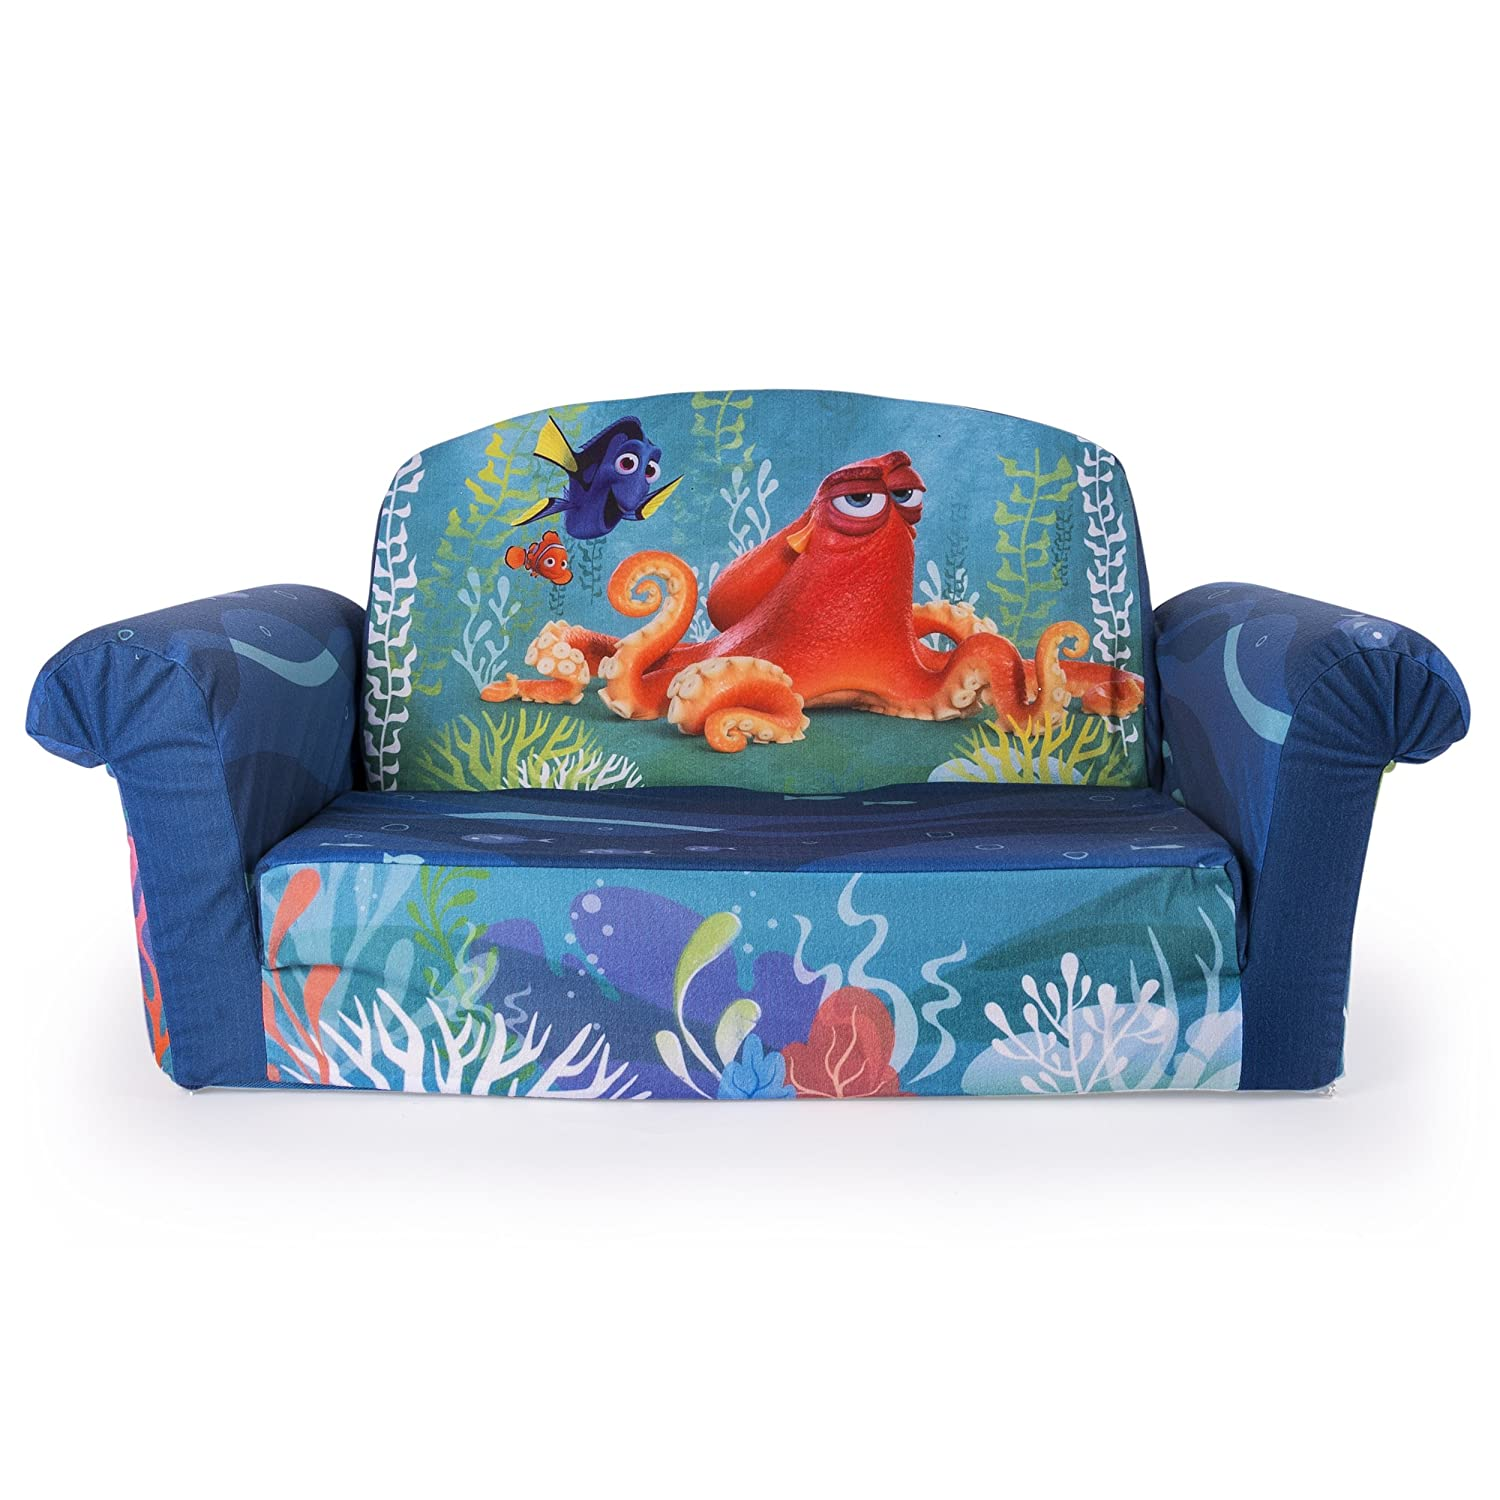 Marshmallow Furniture, Children's 2 in 1 Flip Open Foam Sofa, Disney Pixar Finding Dory, by Spin Master 6028565